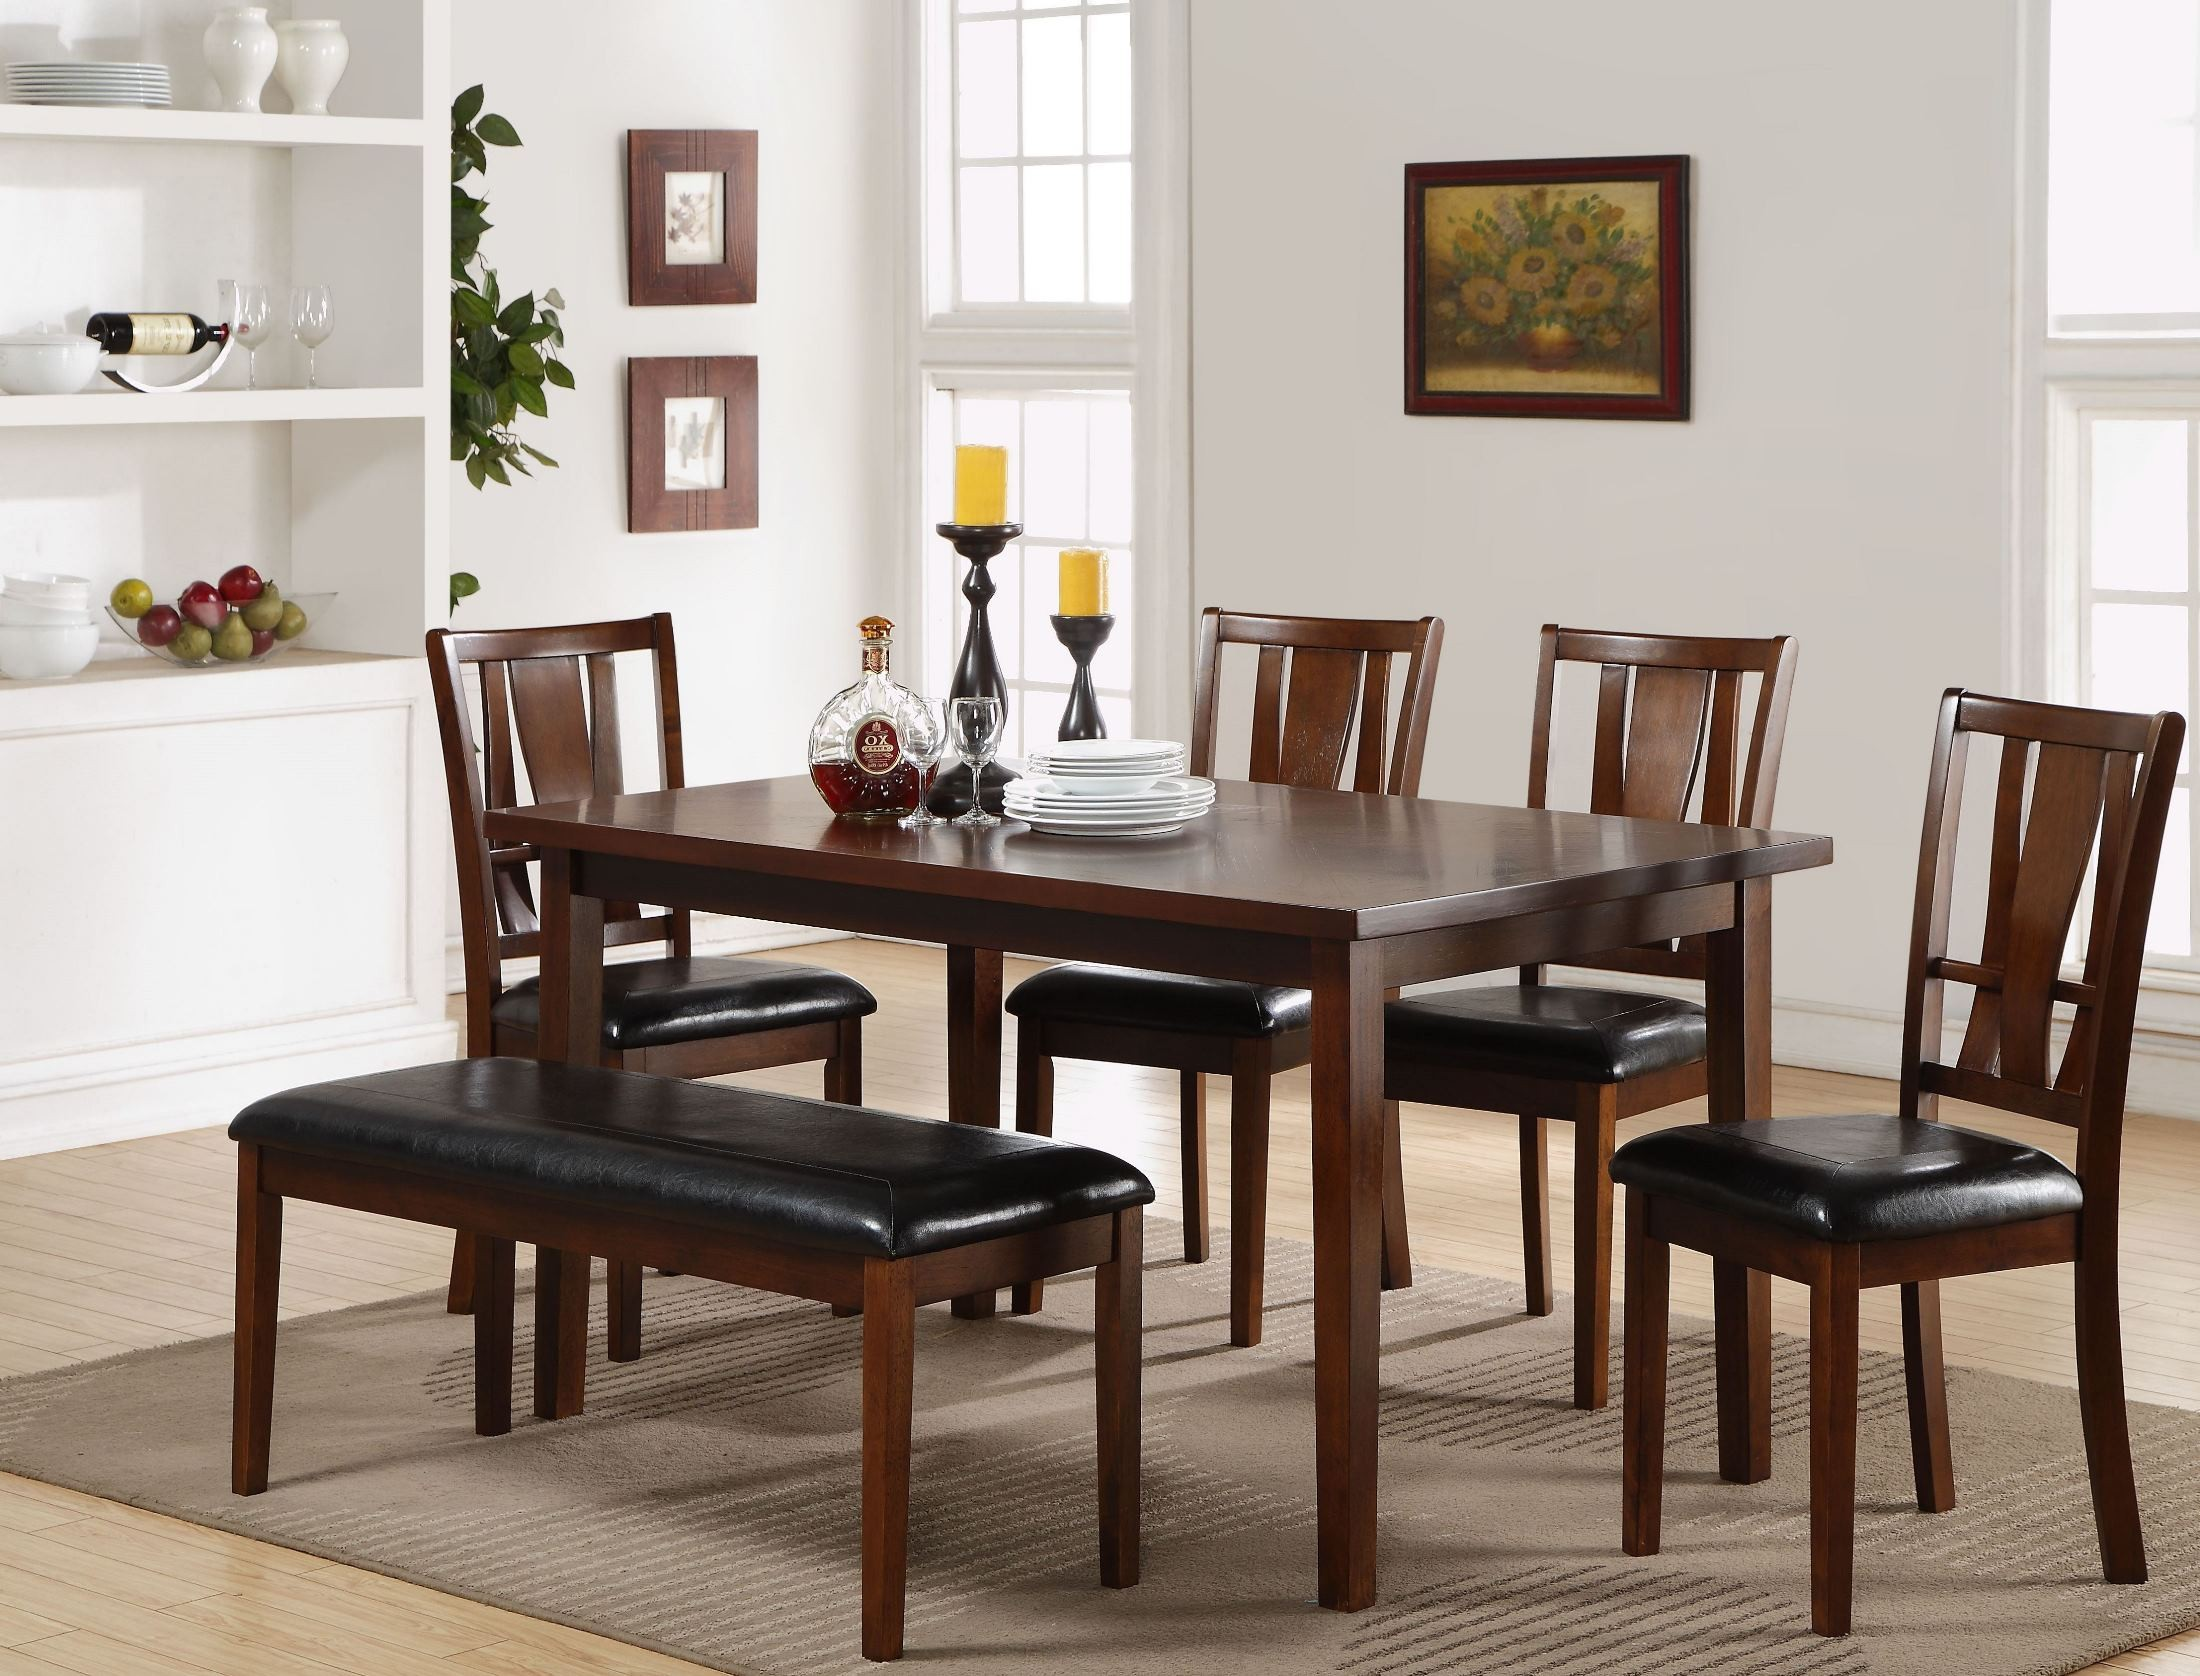 6 Pcs Dixon Dark Espresso Dining Room Set From New Classic Coleman